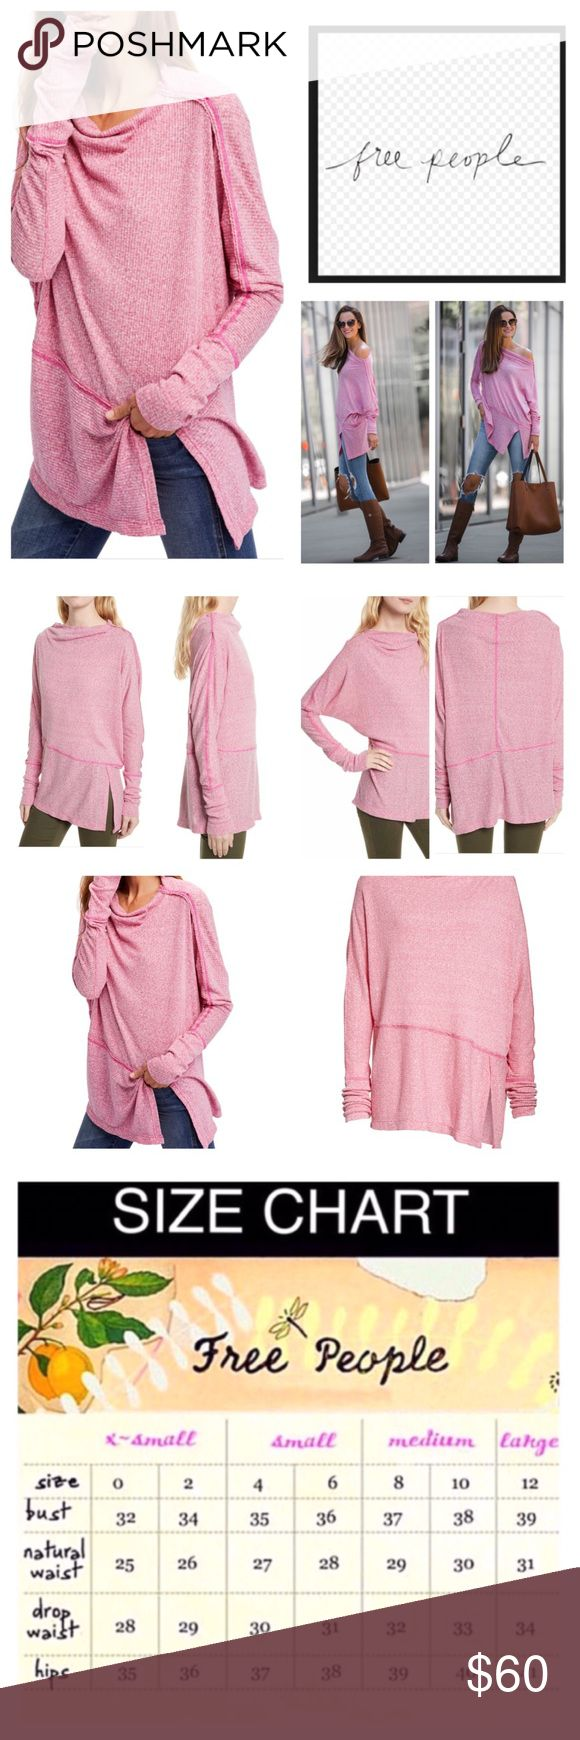 "Free People London Town Asymmetrical Thermal. NWT. Free People London Town Asymmetrical Thermal Top, 50% polyester, 38% cotton, 12% rayon, machine washable, 30"" armpit to armpit (60"" all around), 20"" arm inseam, 28"" length, a chic asymmetrical hem with a breezy side slit lends a playful vibe to the London Town top,  cowl neckline, asymmetrical hem with slit,  measurements are approx.  NO TRADES Free People Tops Tunics"